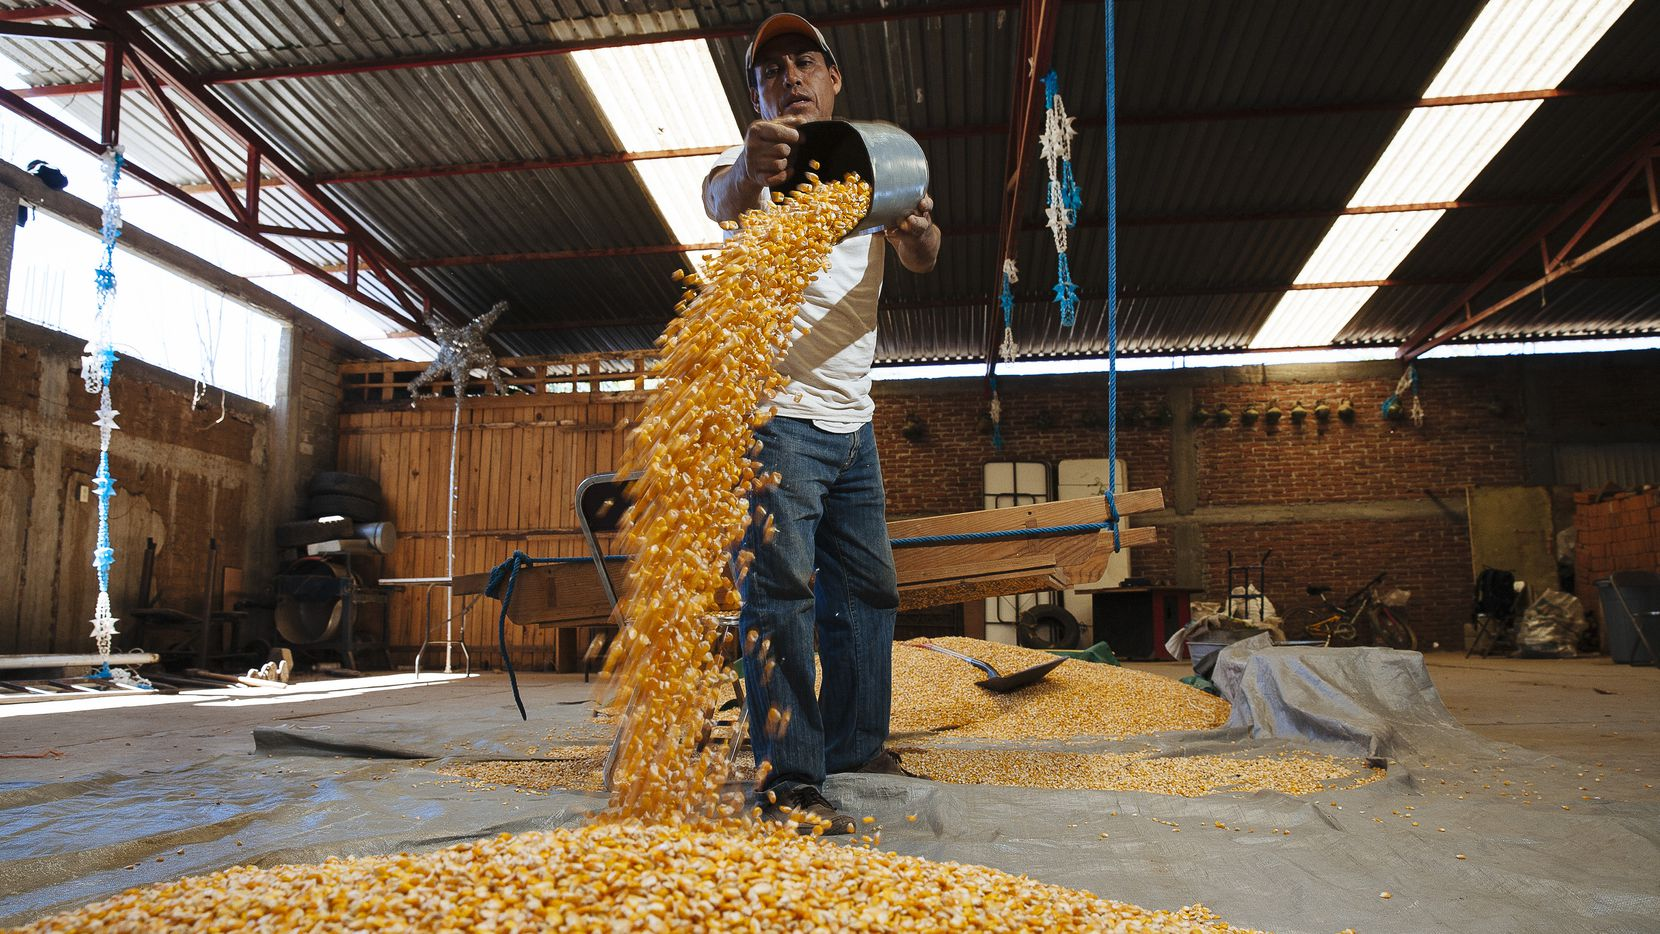 U.S. farmers export over $2.5 billion worth of corn to Mexico annually. That trade, along with many more exports, could be put at risk if President Trump tries to restrict NAFTA or impose new tariffs. (Rodrigo Cruz/The New York Times)